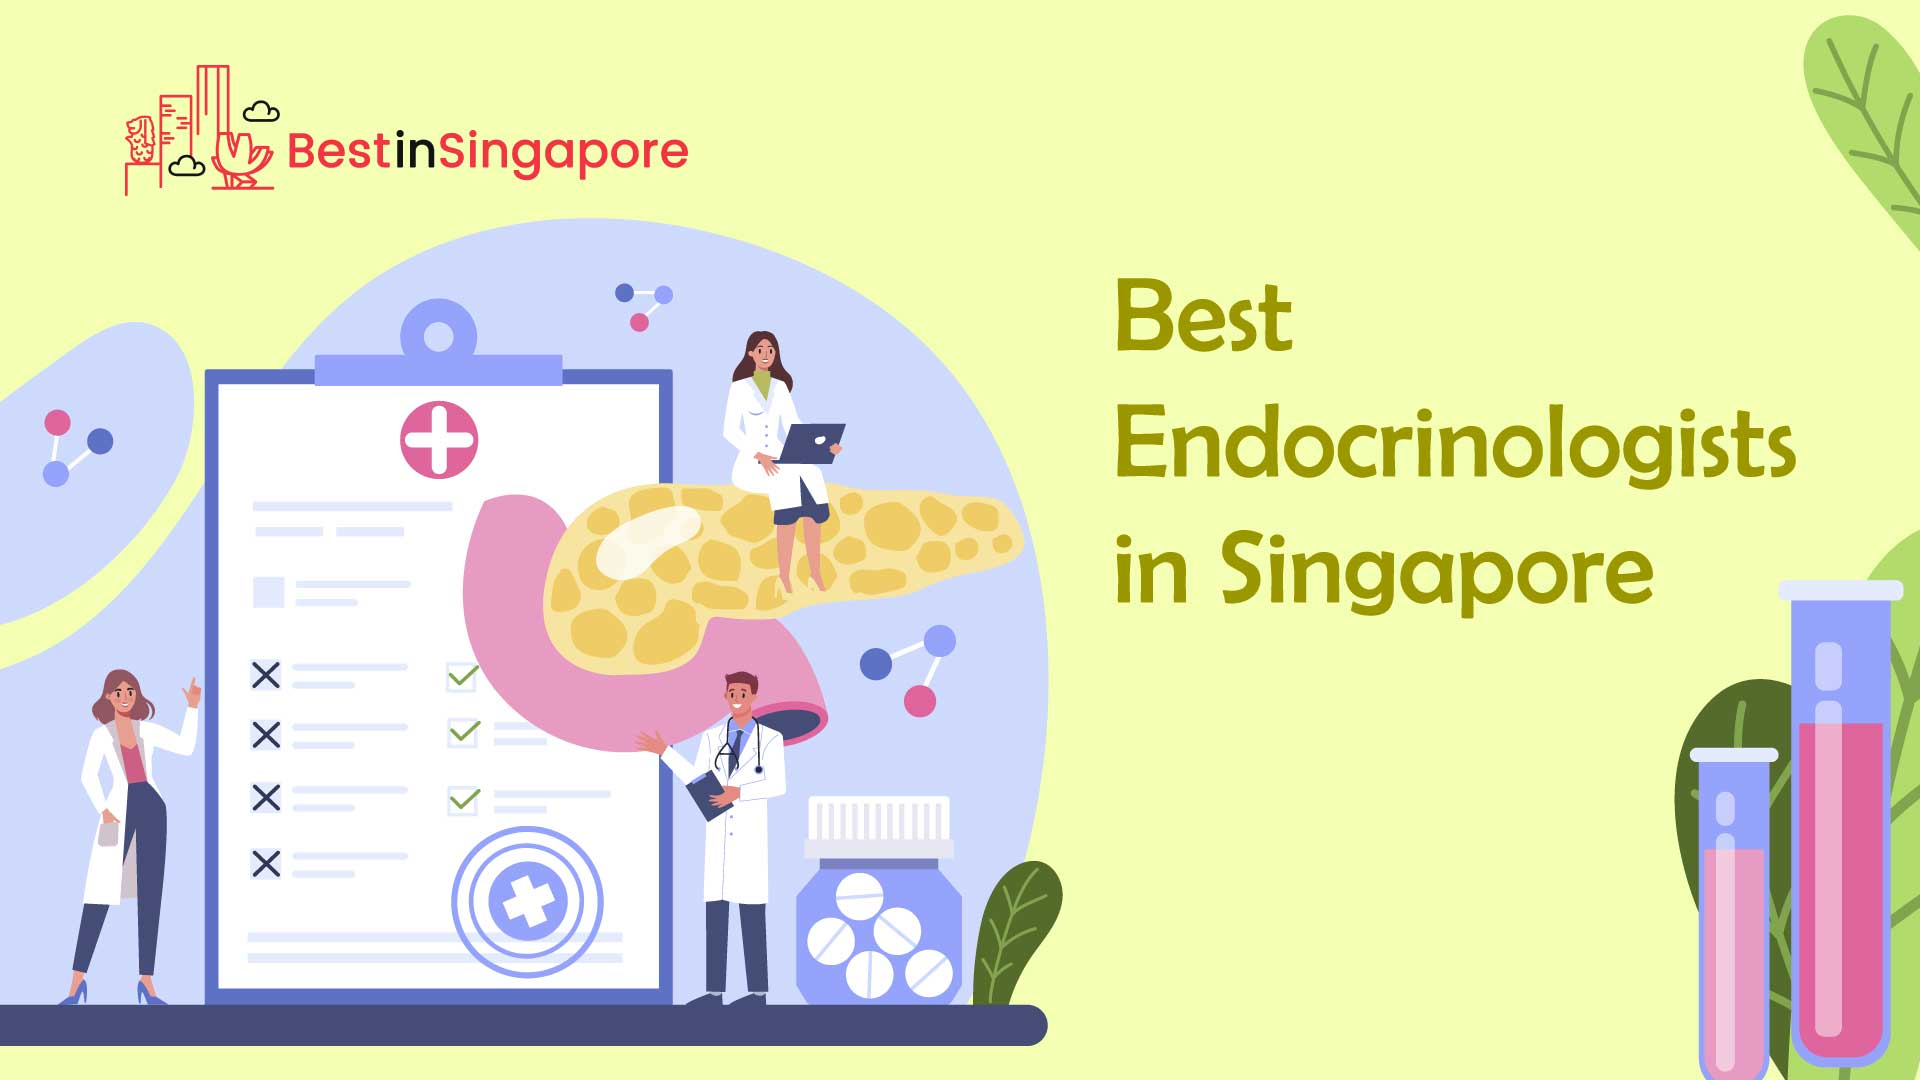 Best Endocrinologists in Singapore